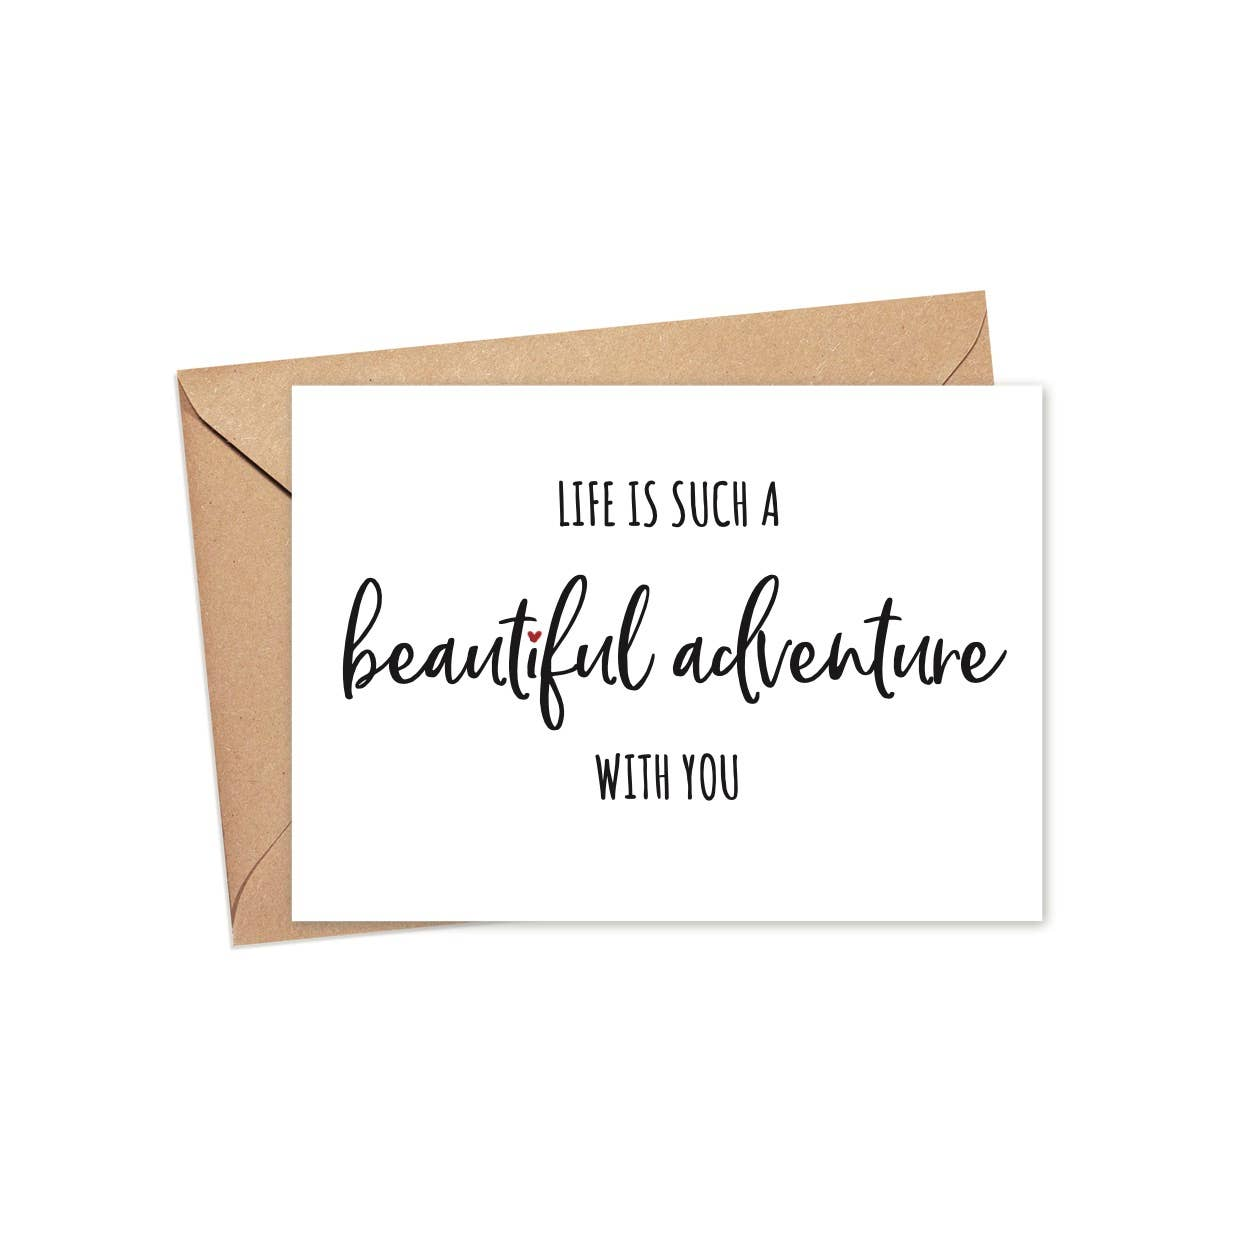 Life Is Such A Beautiful Adventure With You | A2 | Trada Marketplace